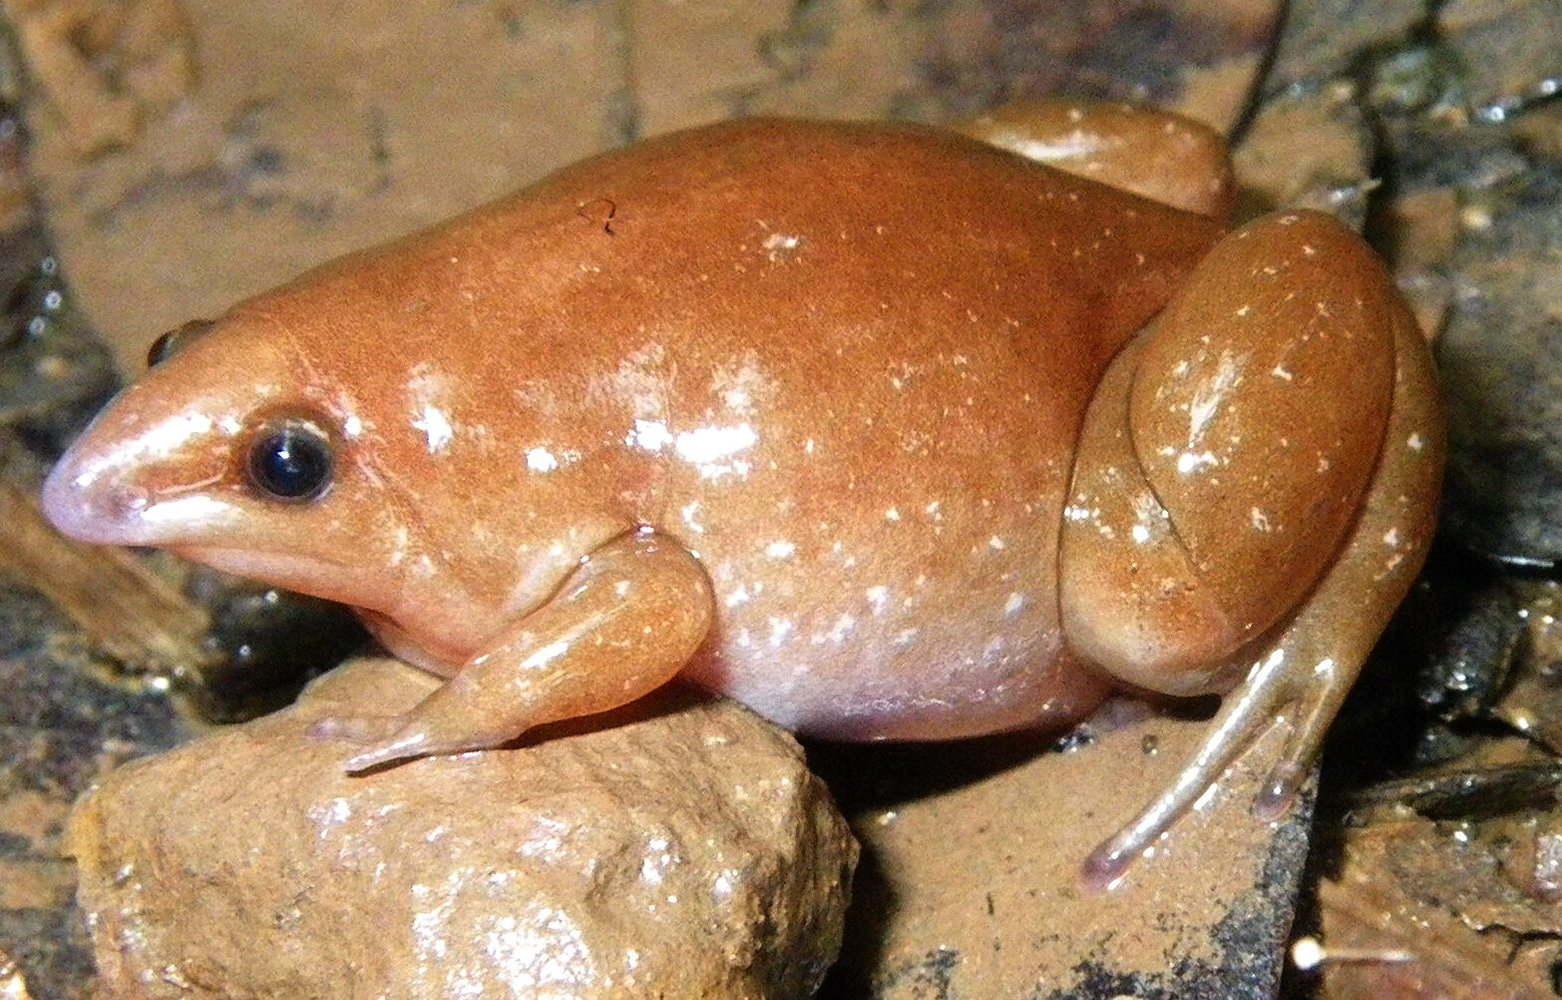 zombie-frog-discovered.jpg